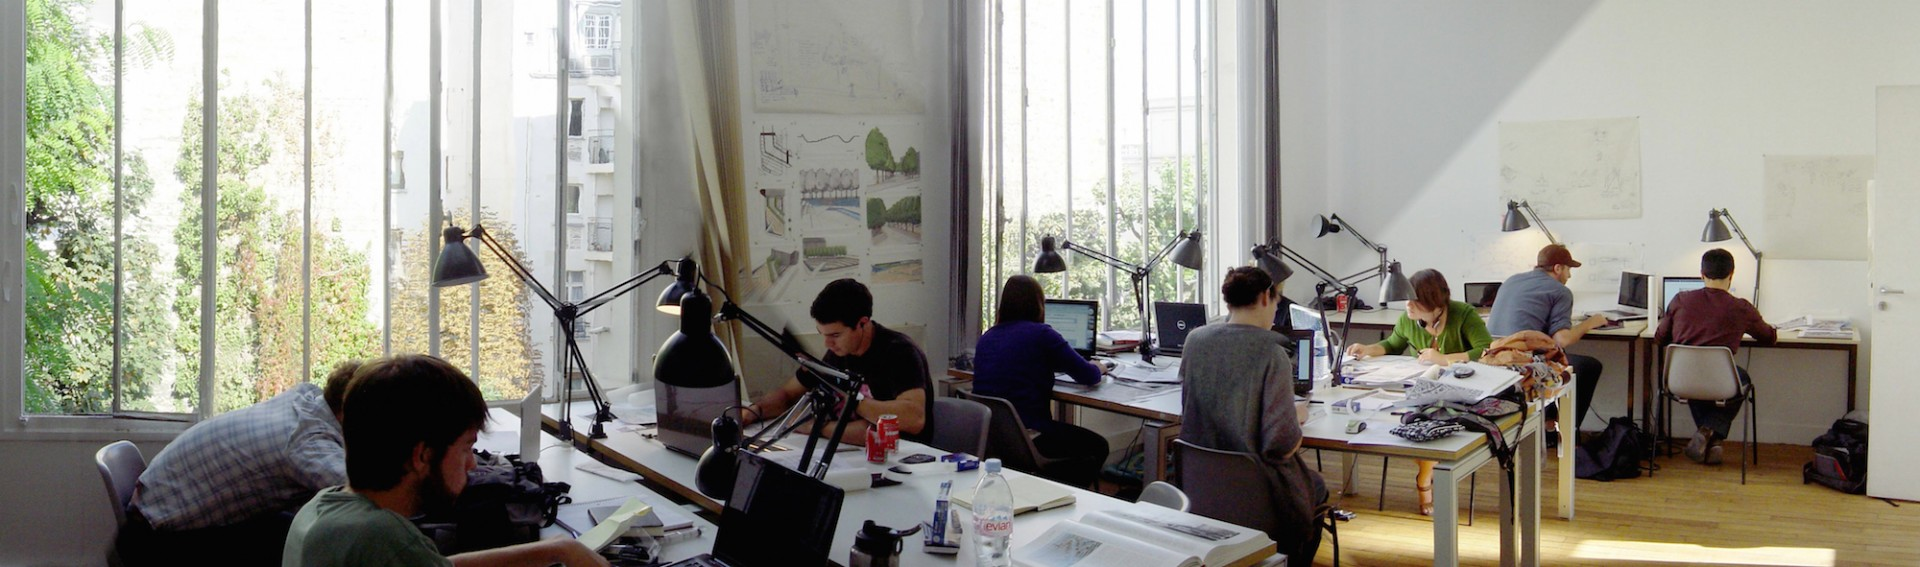 Architecture students at the drawing board